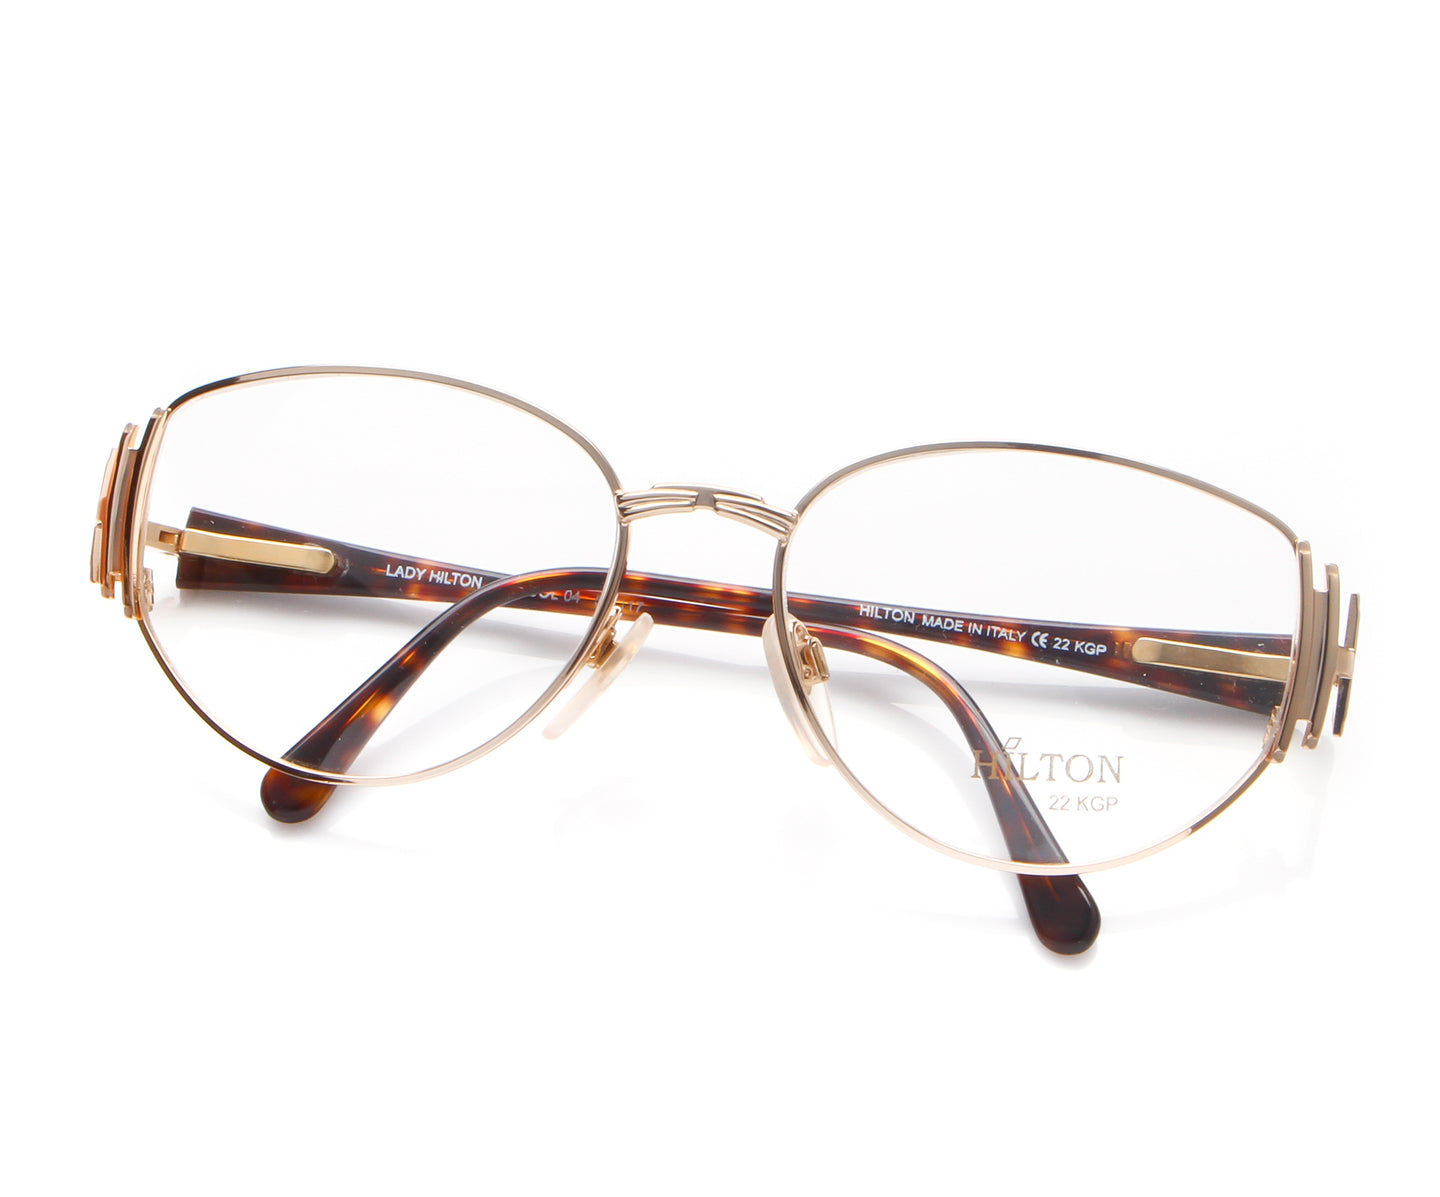 Vintage Hilton Lady Hilton 40 04 22 KGP Thumb, Hilton , glasses frames, eyeglasses online, eyeglass frames, mens glasses, womens glasses, buy glasses online, designer eyeglasses, vintage sunglasses, retro sunglasses, vintage glasses, sunglass, eyeglass, glasses, lens, vintage frames company, vf